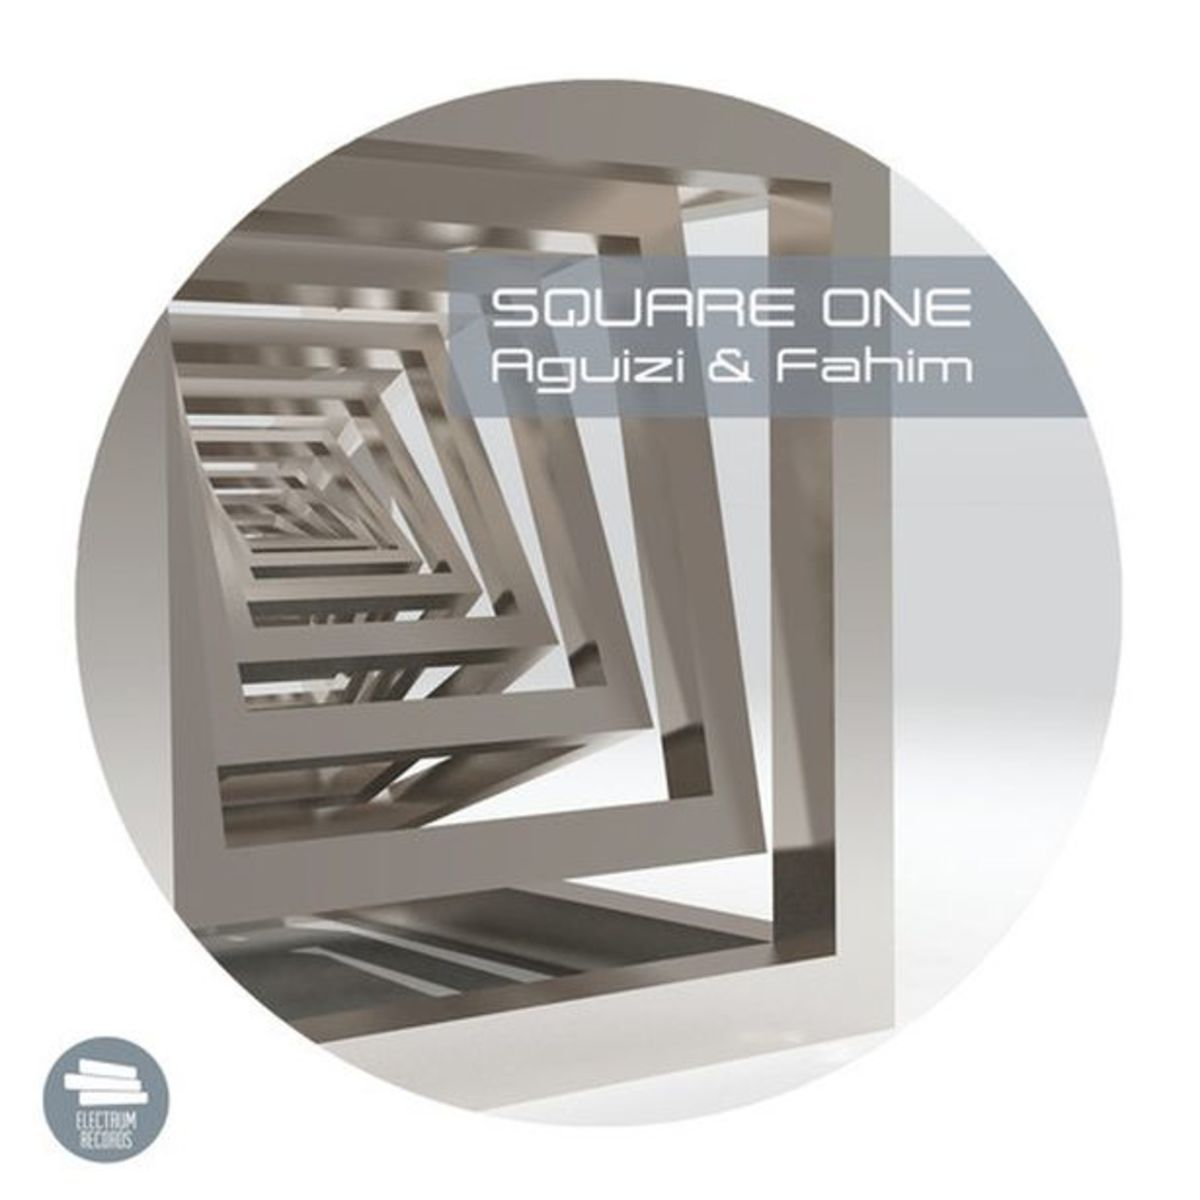 "Label Spotlight: Cairo's Electrum Records Release Aguizi & Fahim's ""Square One"" House Music EP"